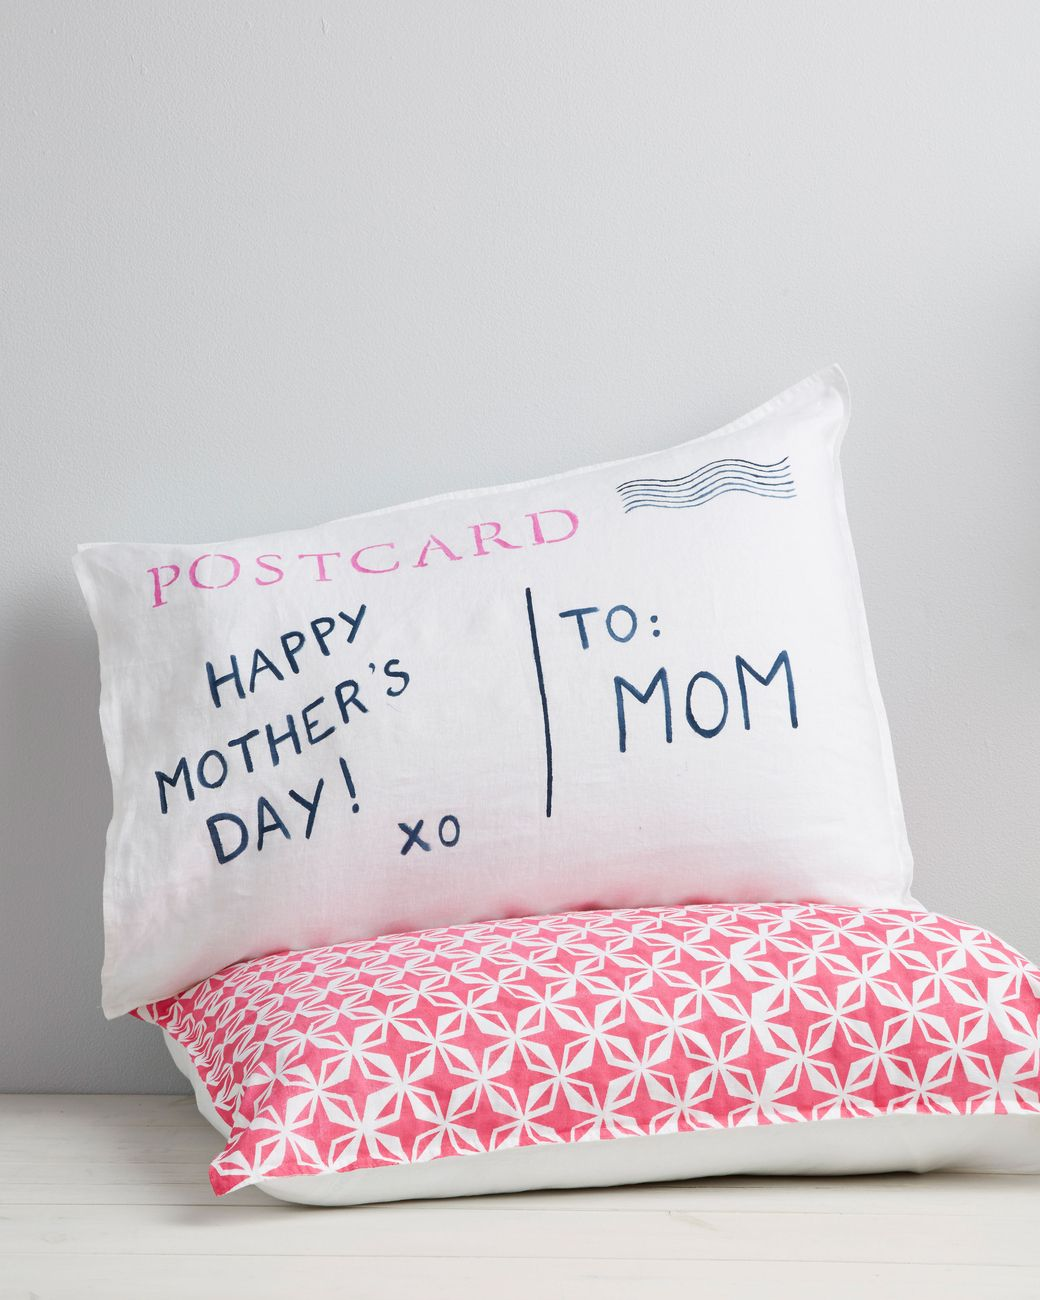 Living long distance from Mom? This Mother's Day, send her your love with a DIY pillow in the shape of a vintage postcard (stamped with a personalized message specially meant for her).